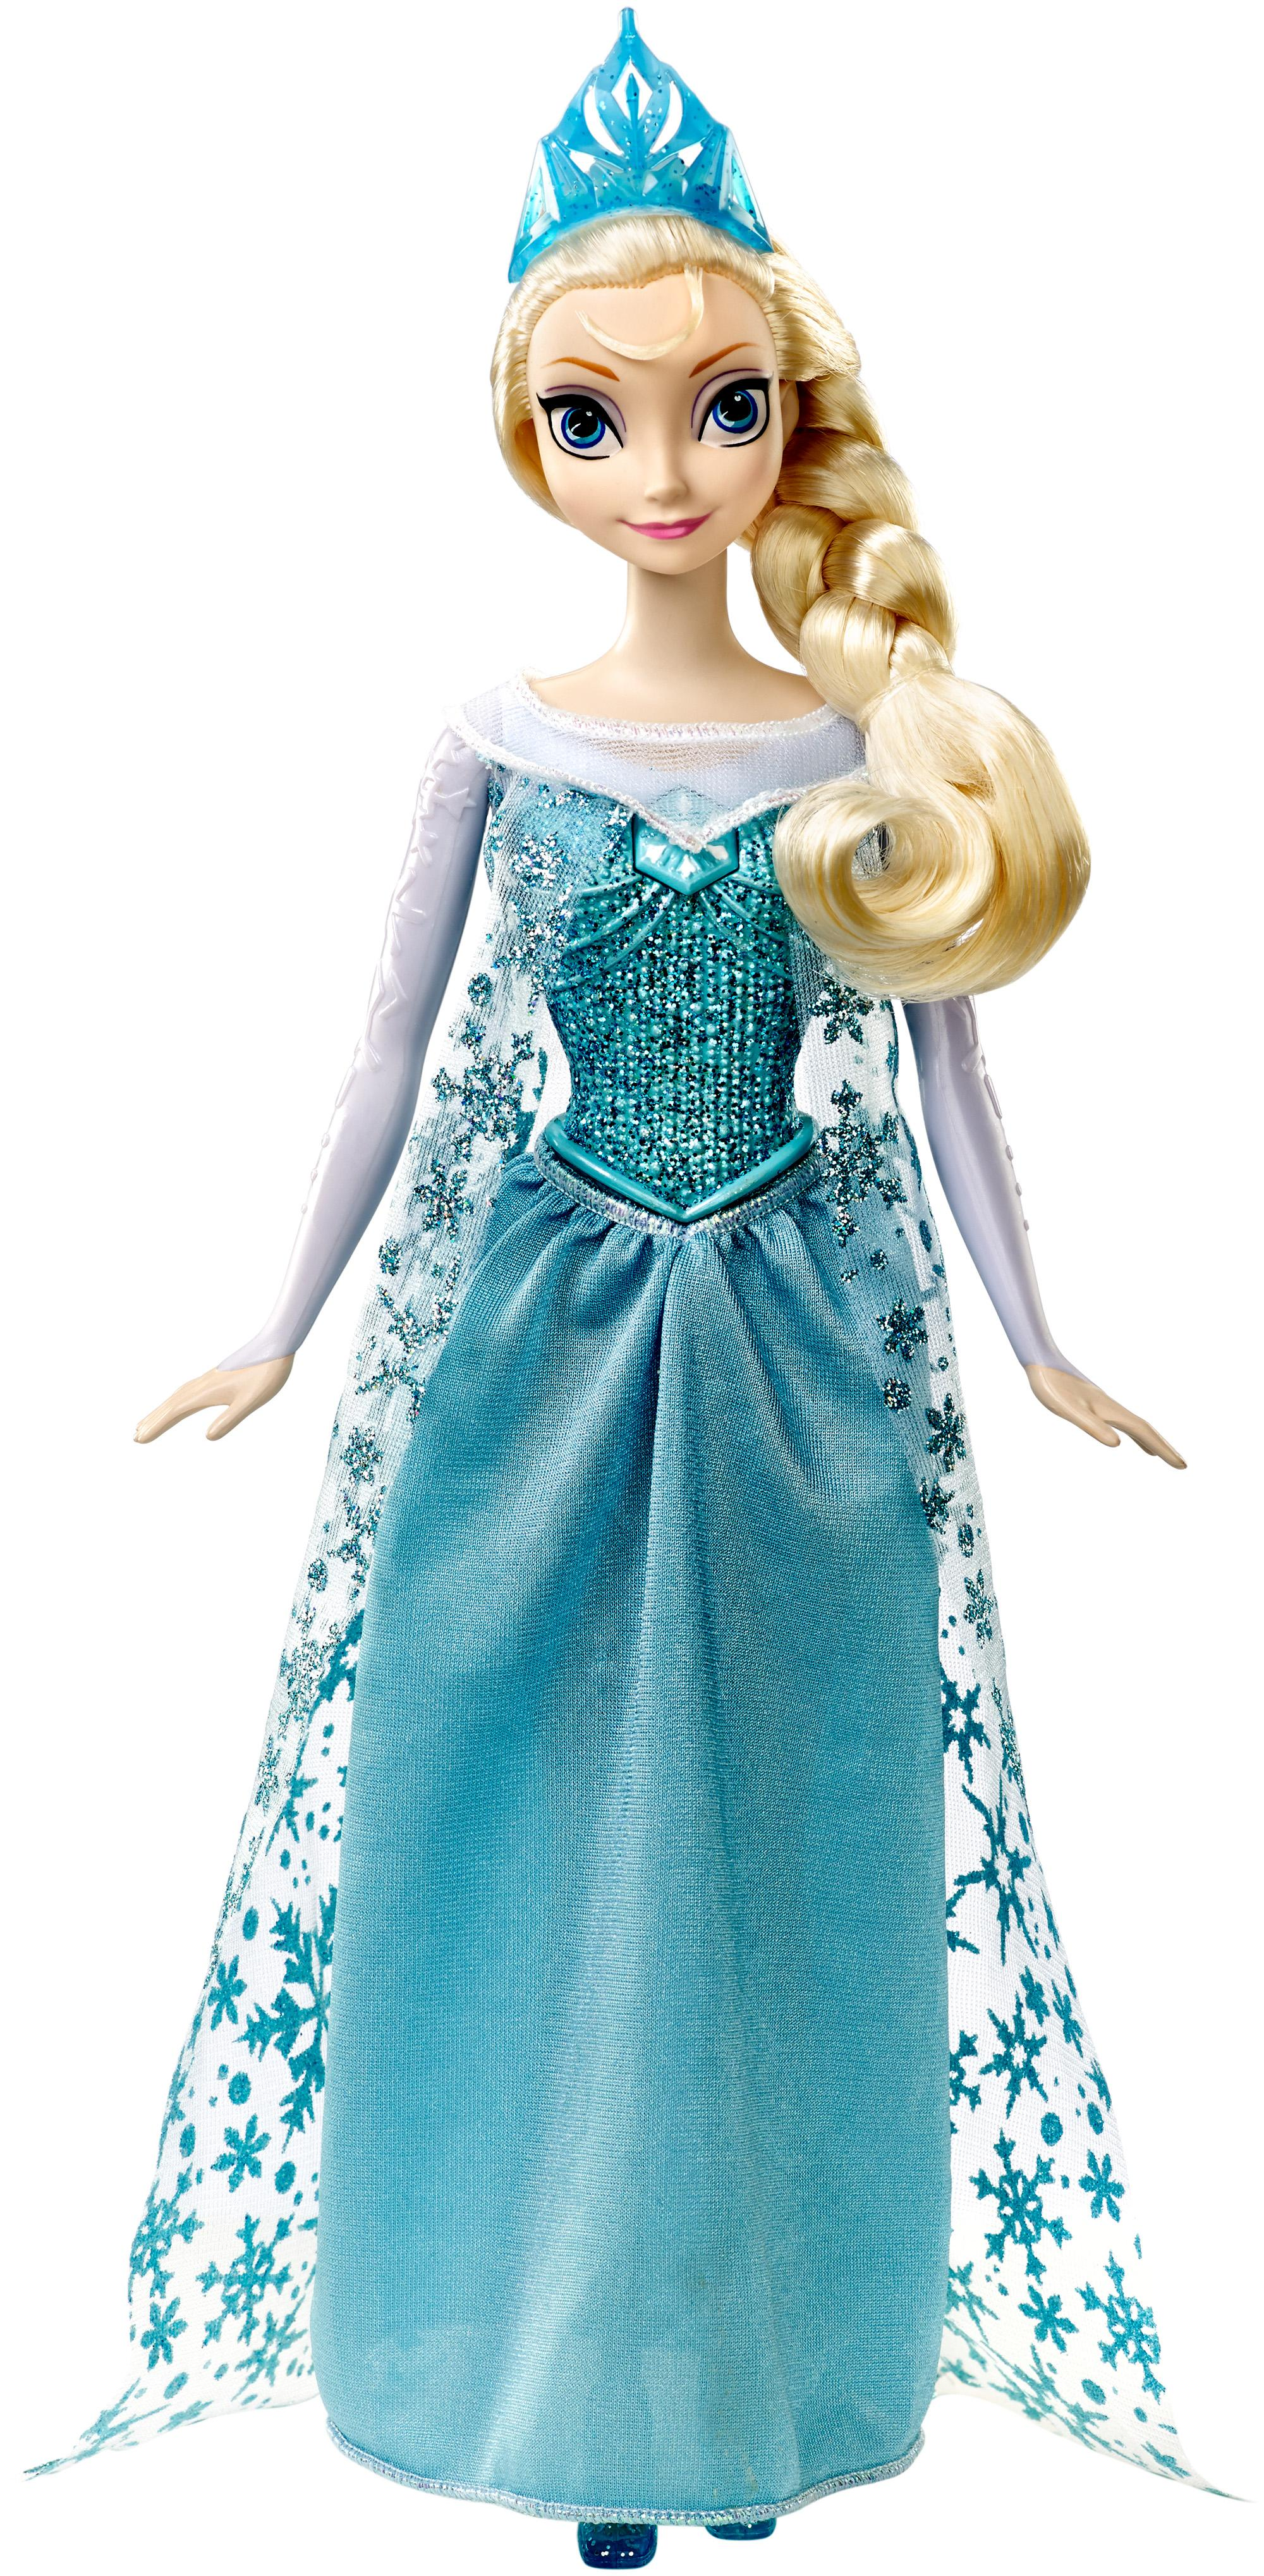 Amazon.com: Disney Frozen Singing Elsa Doll: Toys & Games